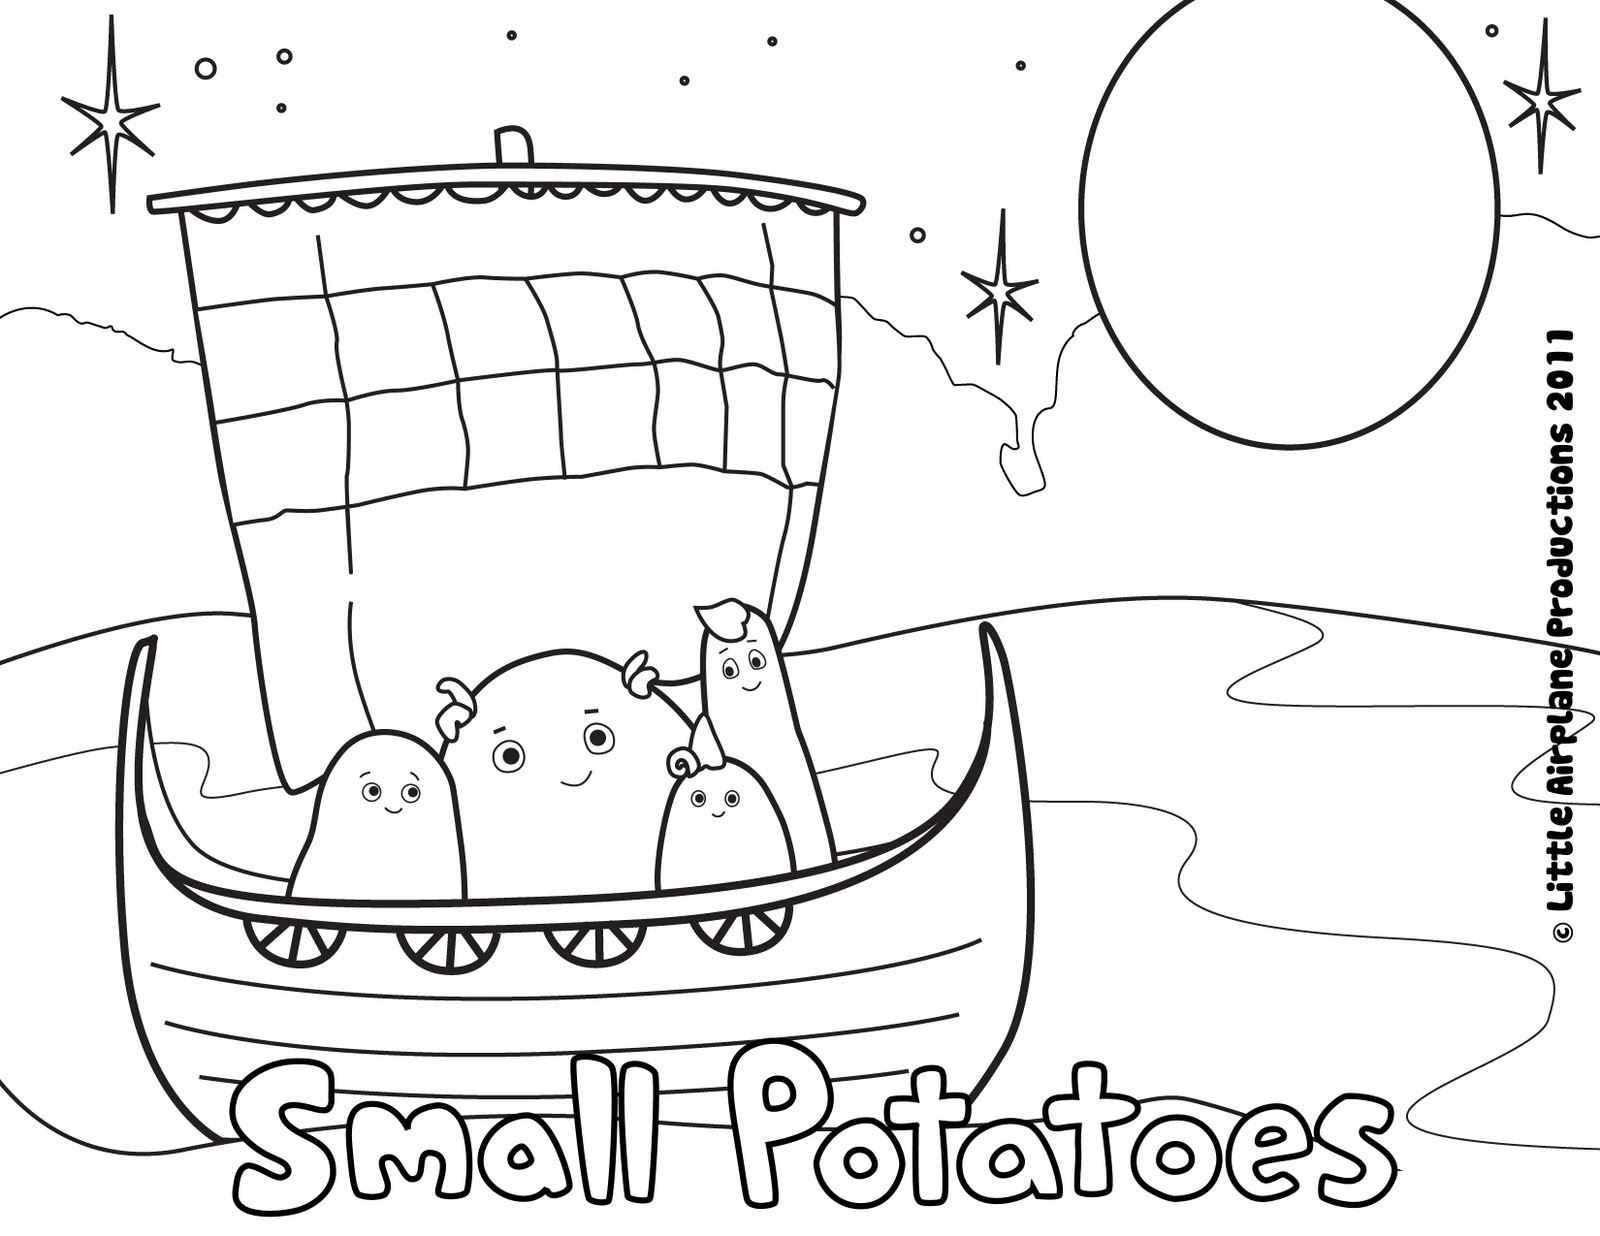 Coloring: Erica Kepler: Small Potatoes Coloring Pages